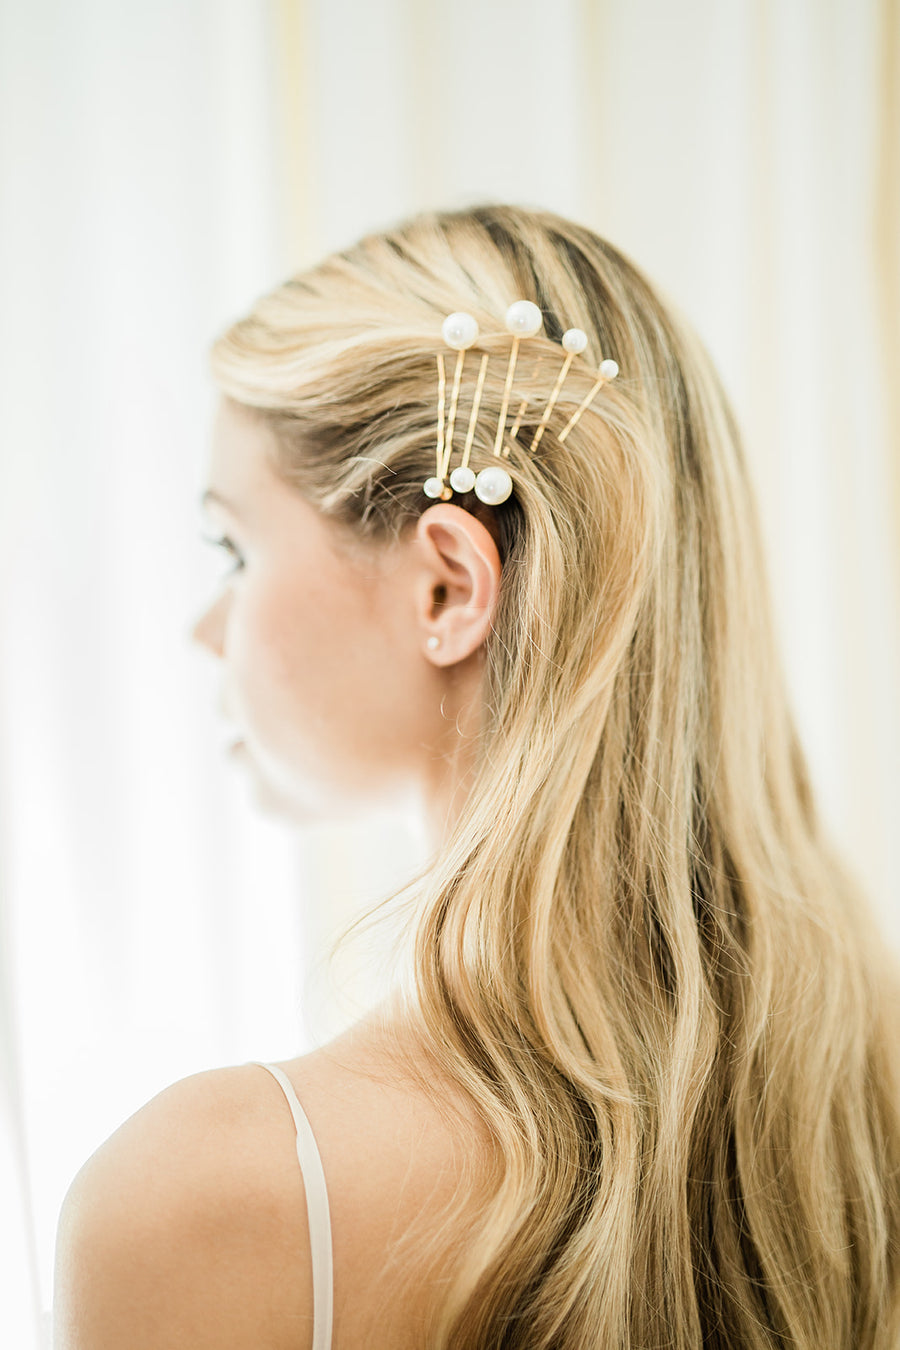 Perla Bobby Pin 7-Set with Pearls - The Beach Bride by Chic Parisien, a destination for beach weddings, bachelorettes and honeymoons